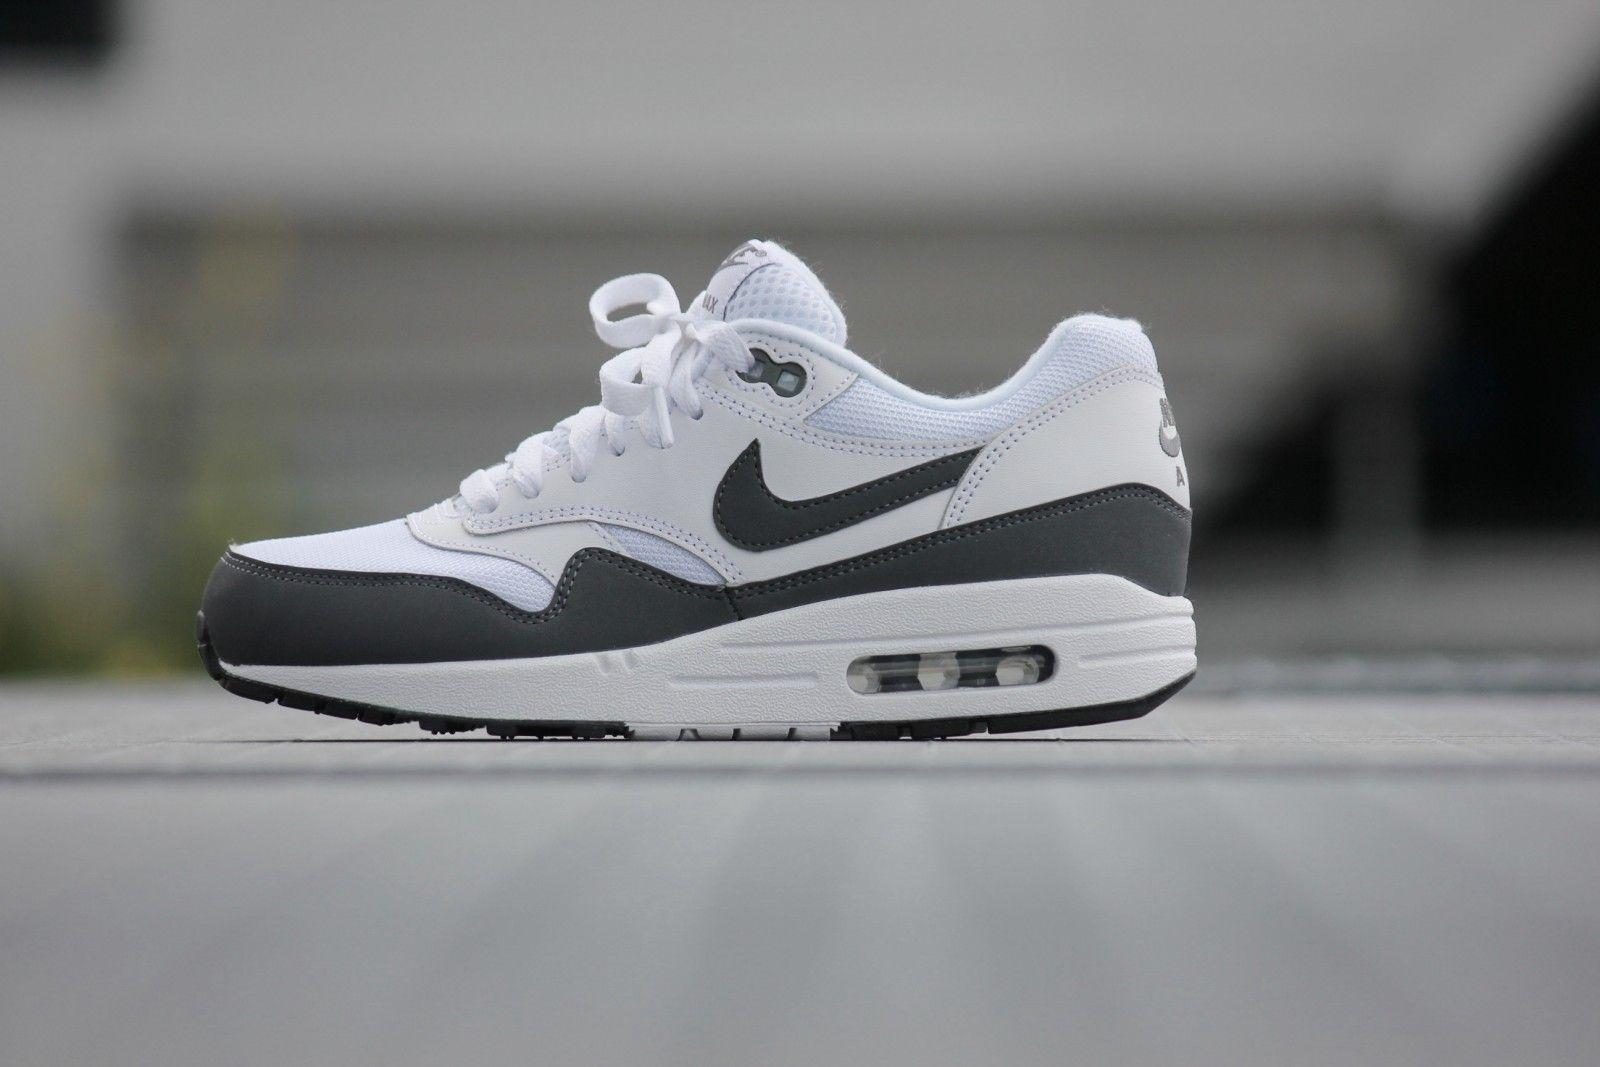 finest selection a383c 95d44 Nike Air Max 1 Essential White  Dark Grey-Black - 537383-126